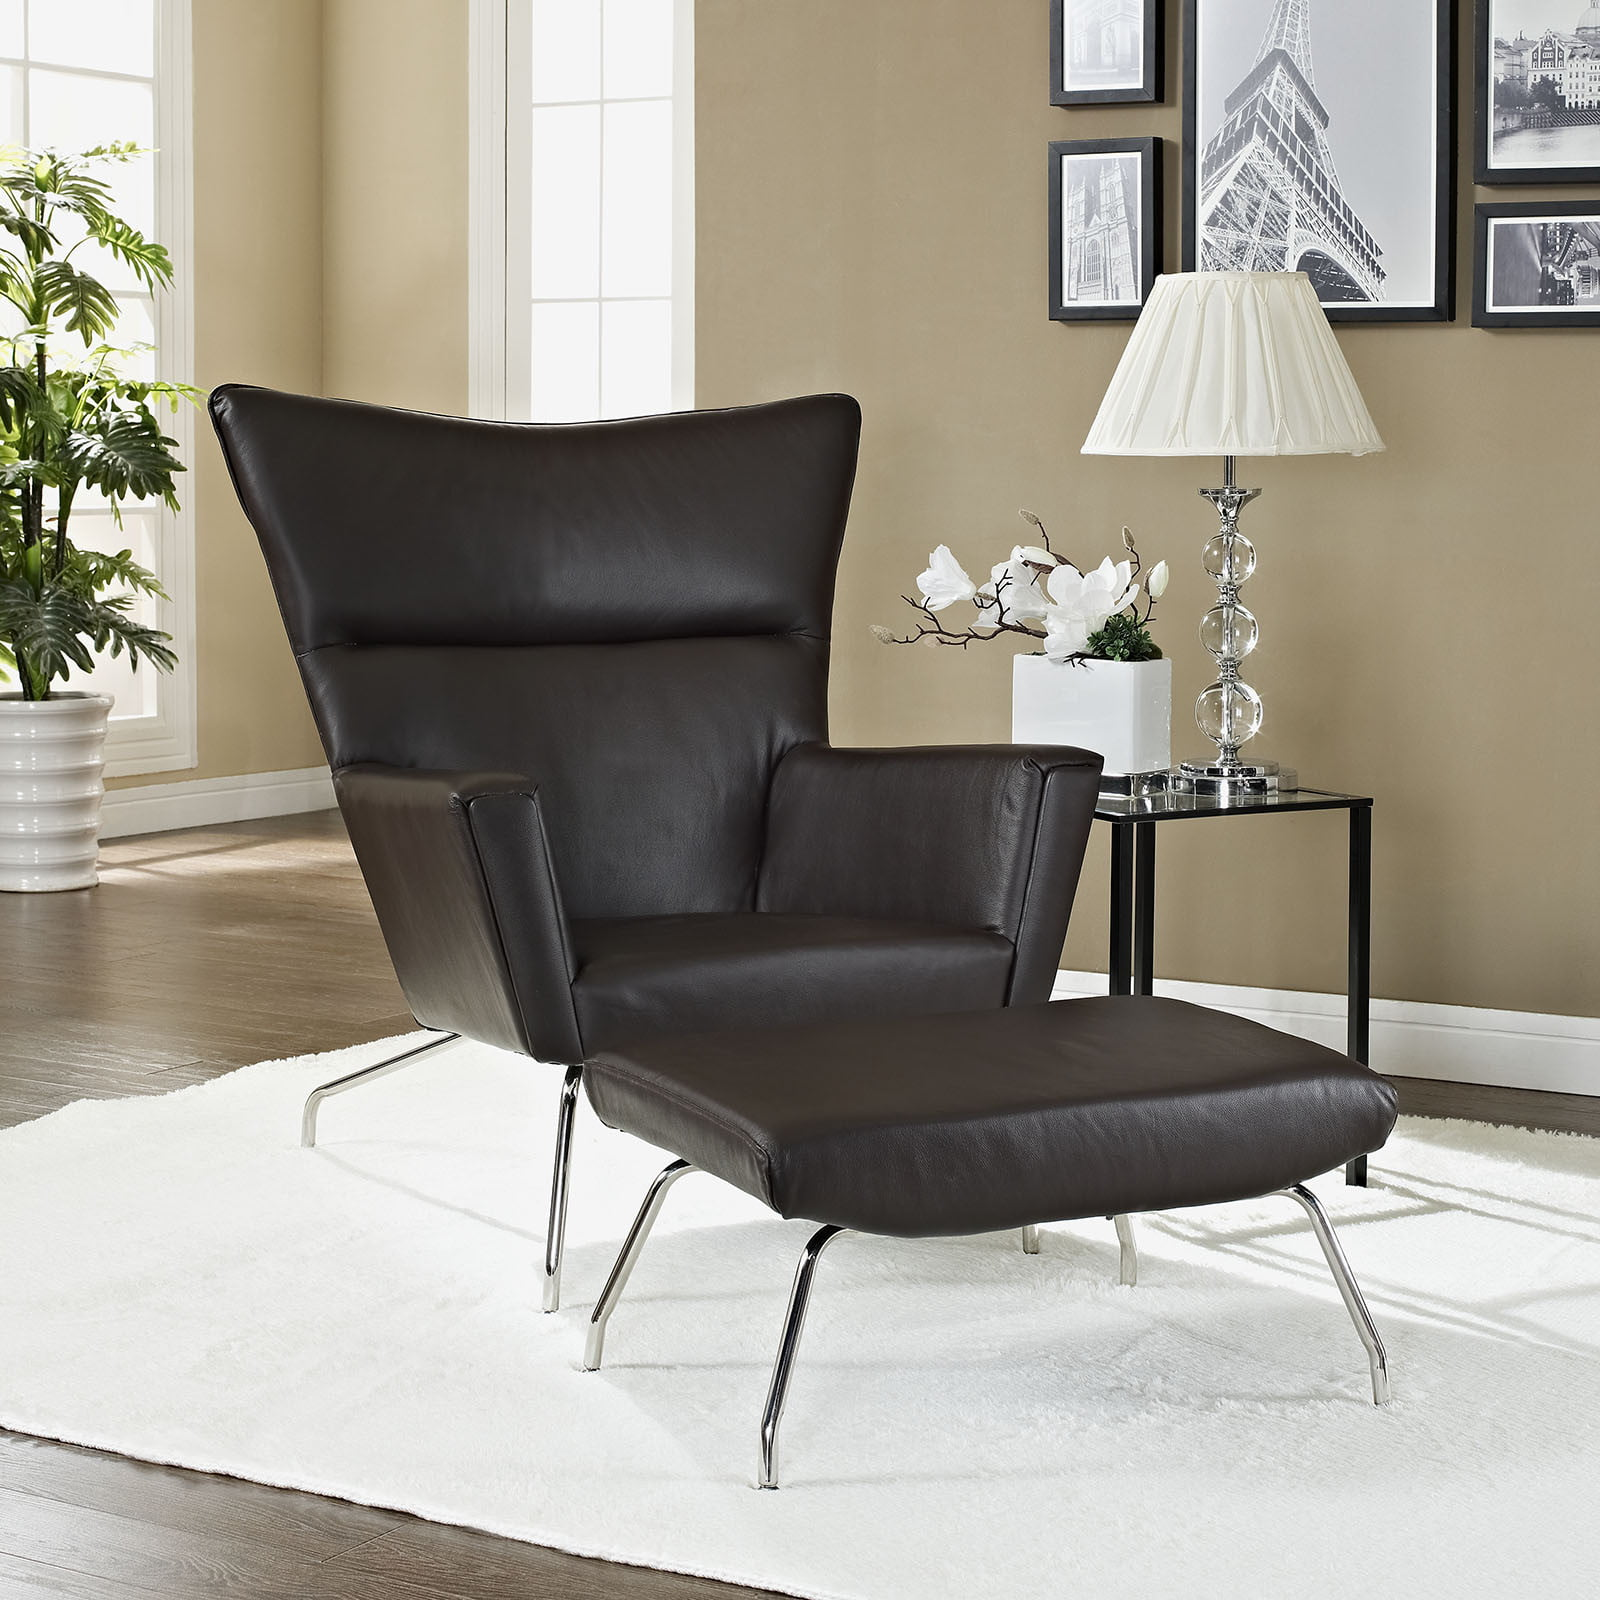 Hans wegner wing chair ottoman reproduction leather the furnishplus - Wegner wing chair replica ...